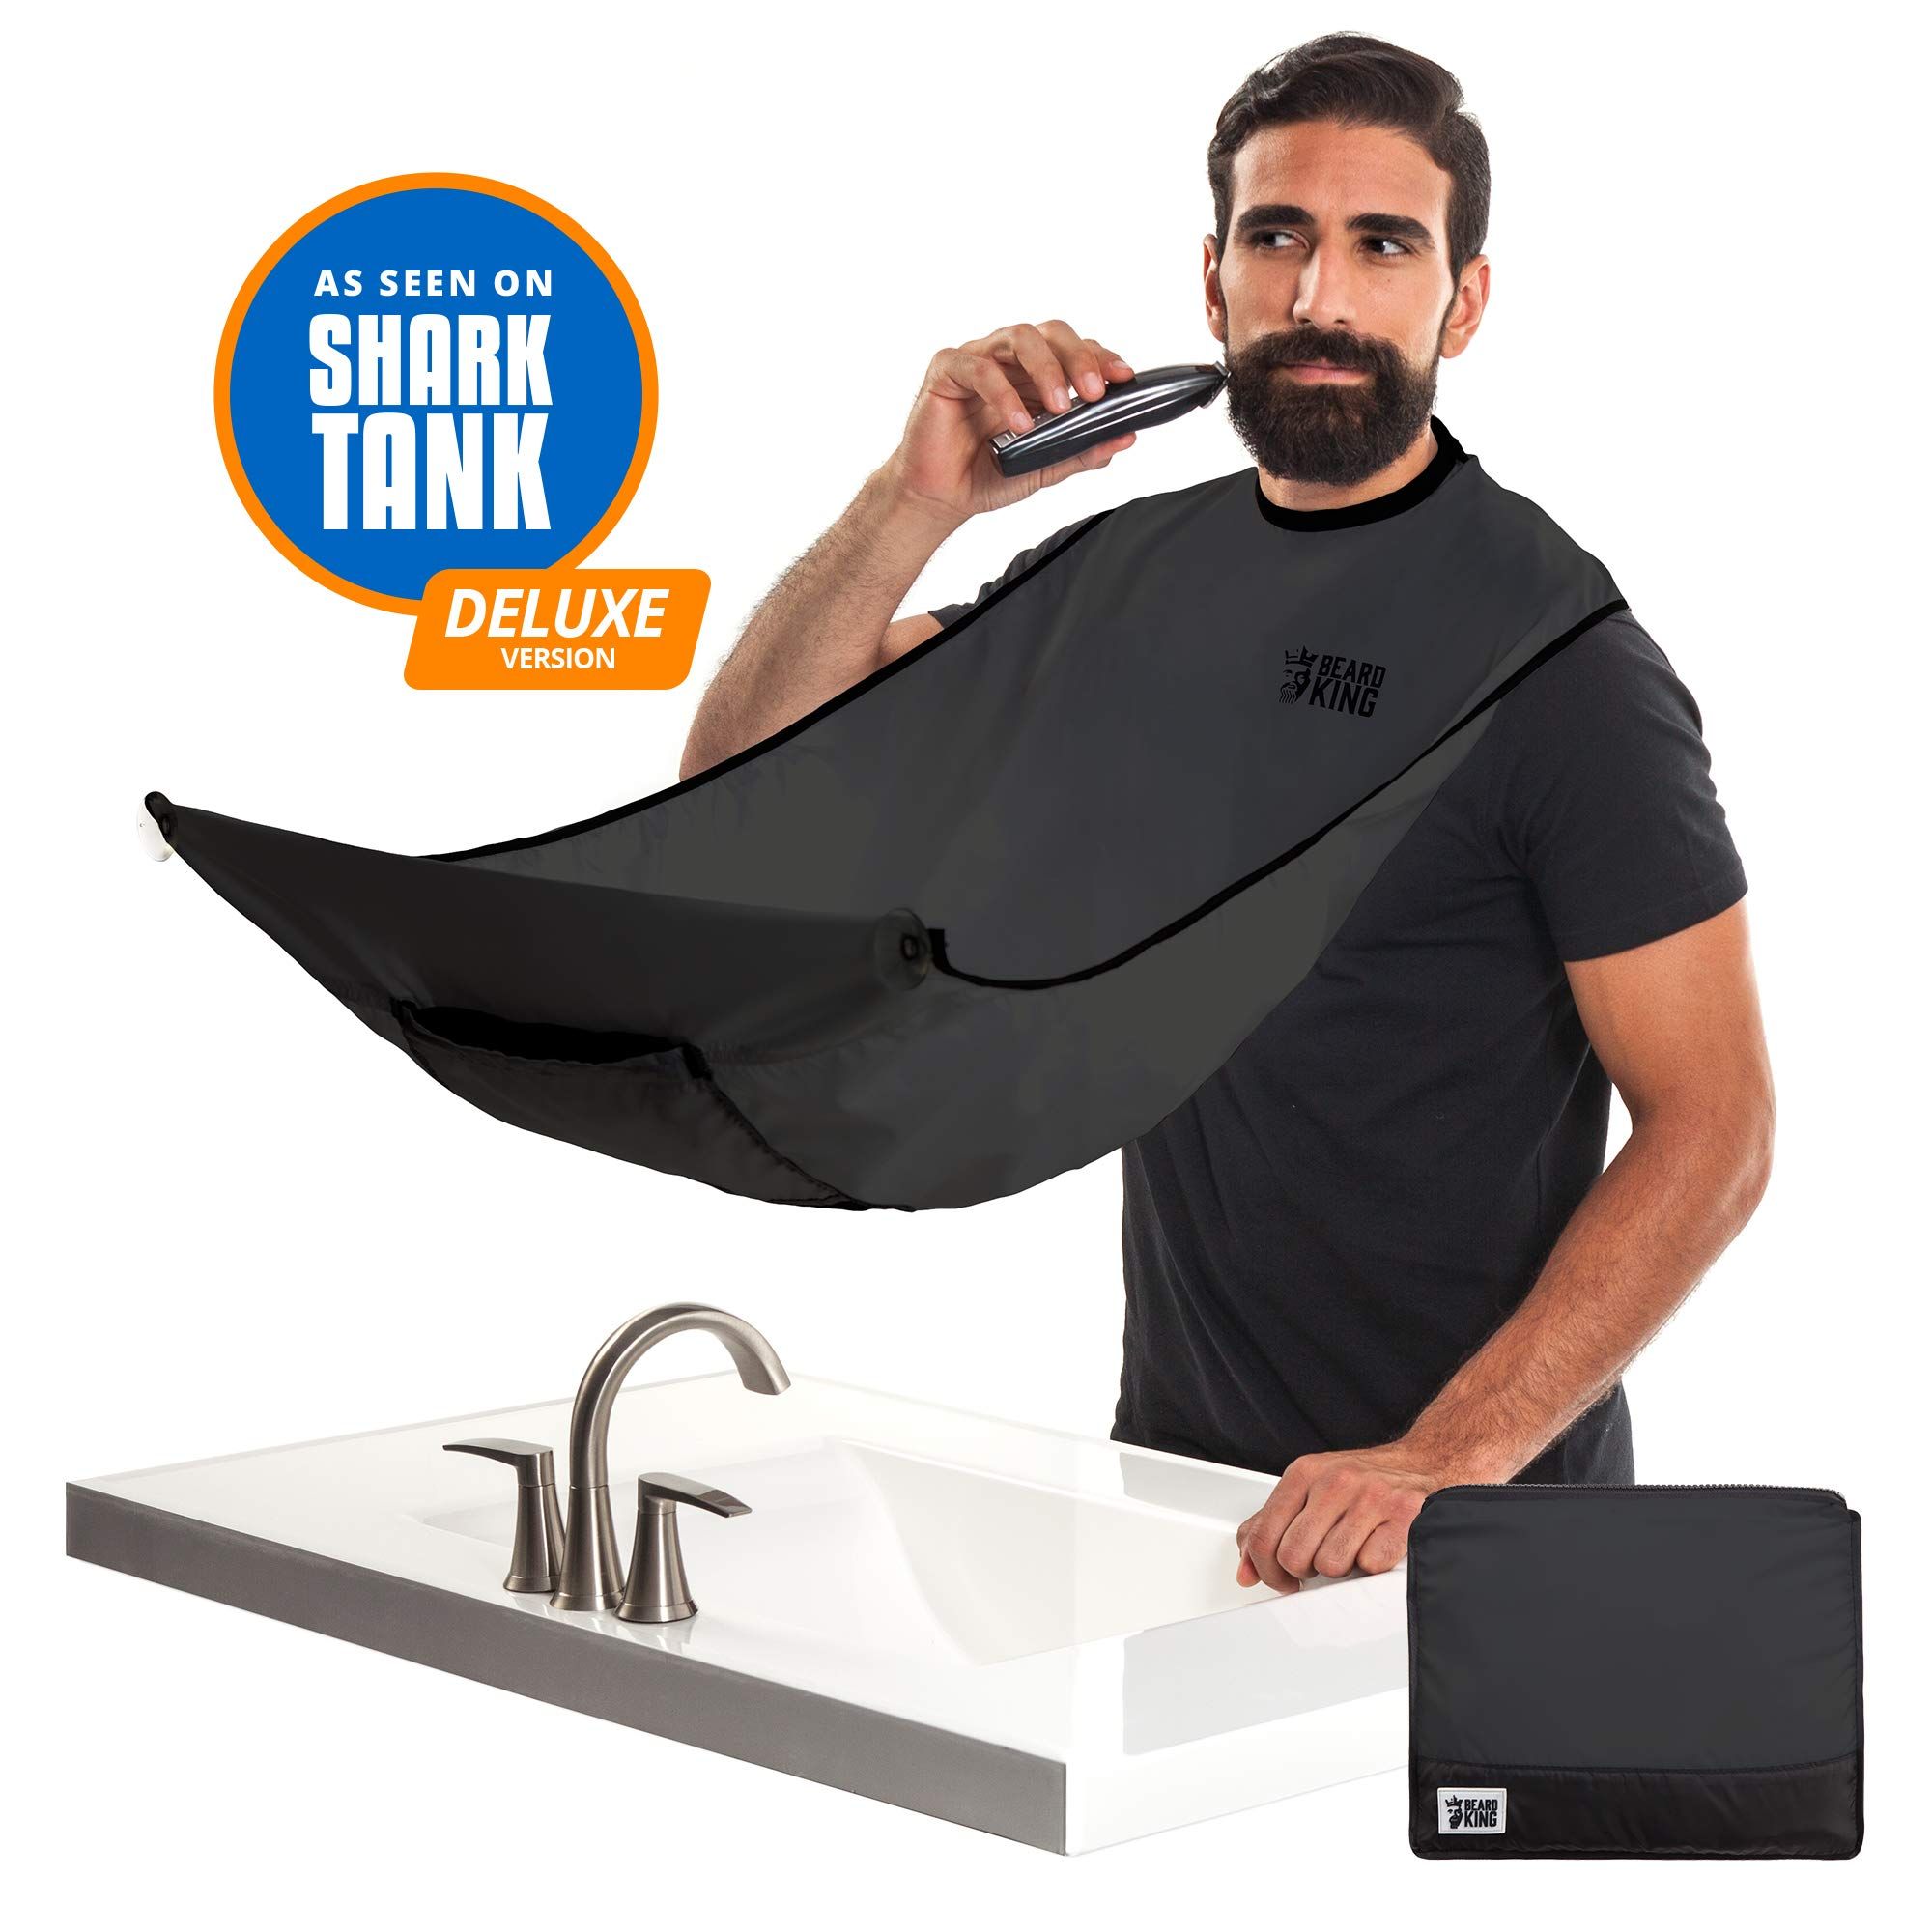 "BEARD KING - The Official Beard Bib - Hair Clippings Catcher & Grooming Cape Apron - ""As Seen on Shark Tank"" - Black (Deluxe Version)"